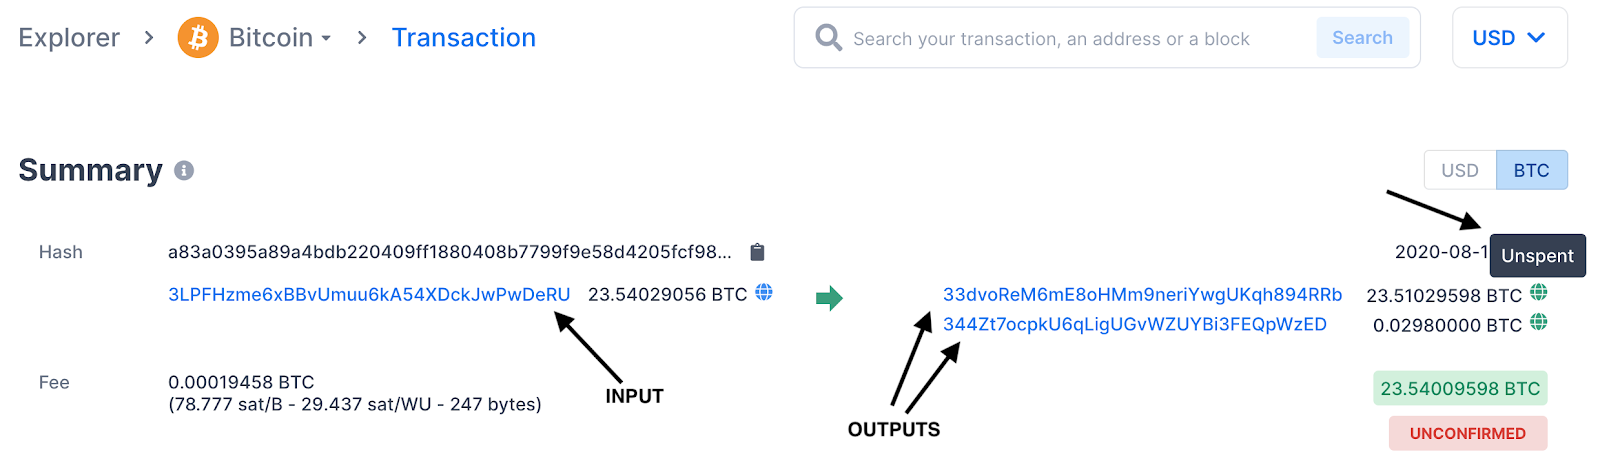 Example of a Bitcoin transaction showing its input and outputs